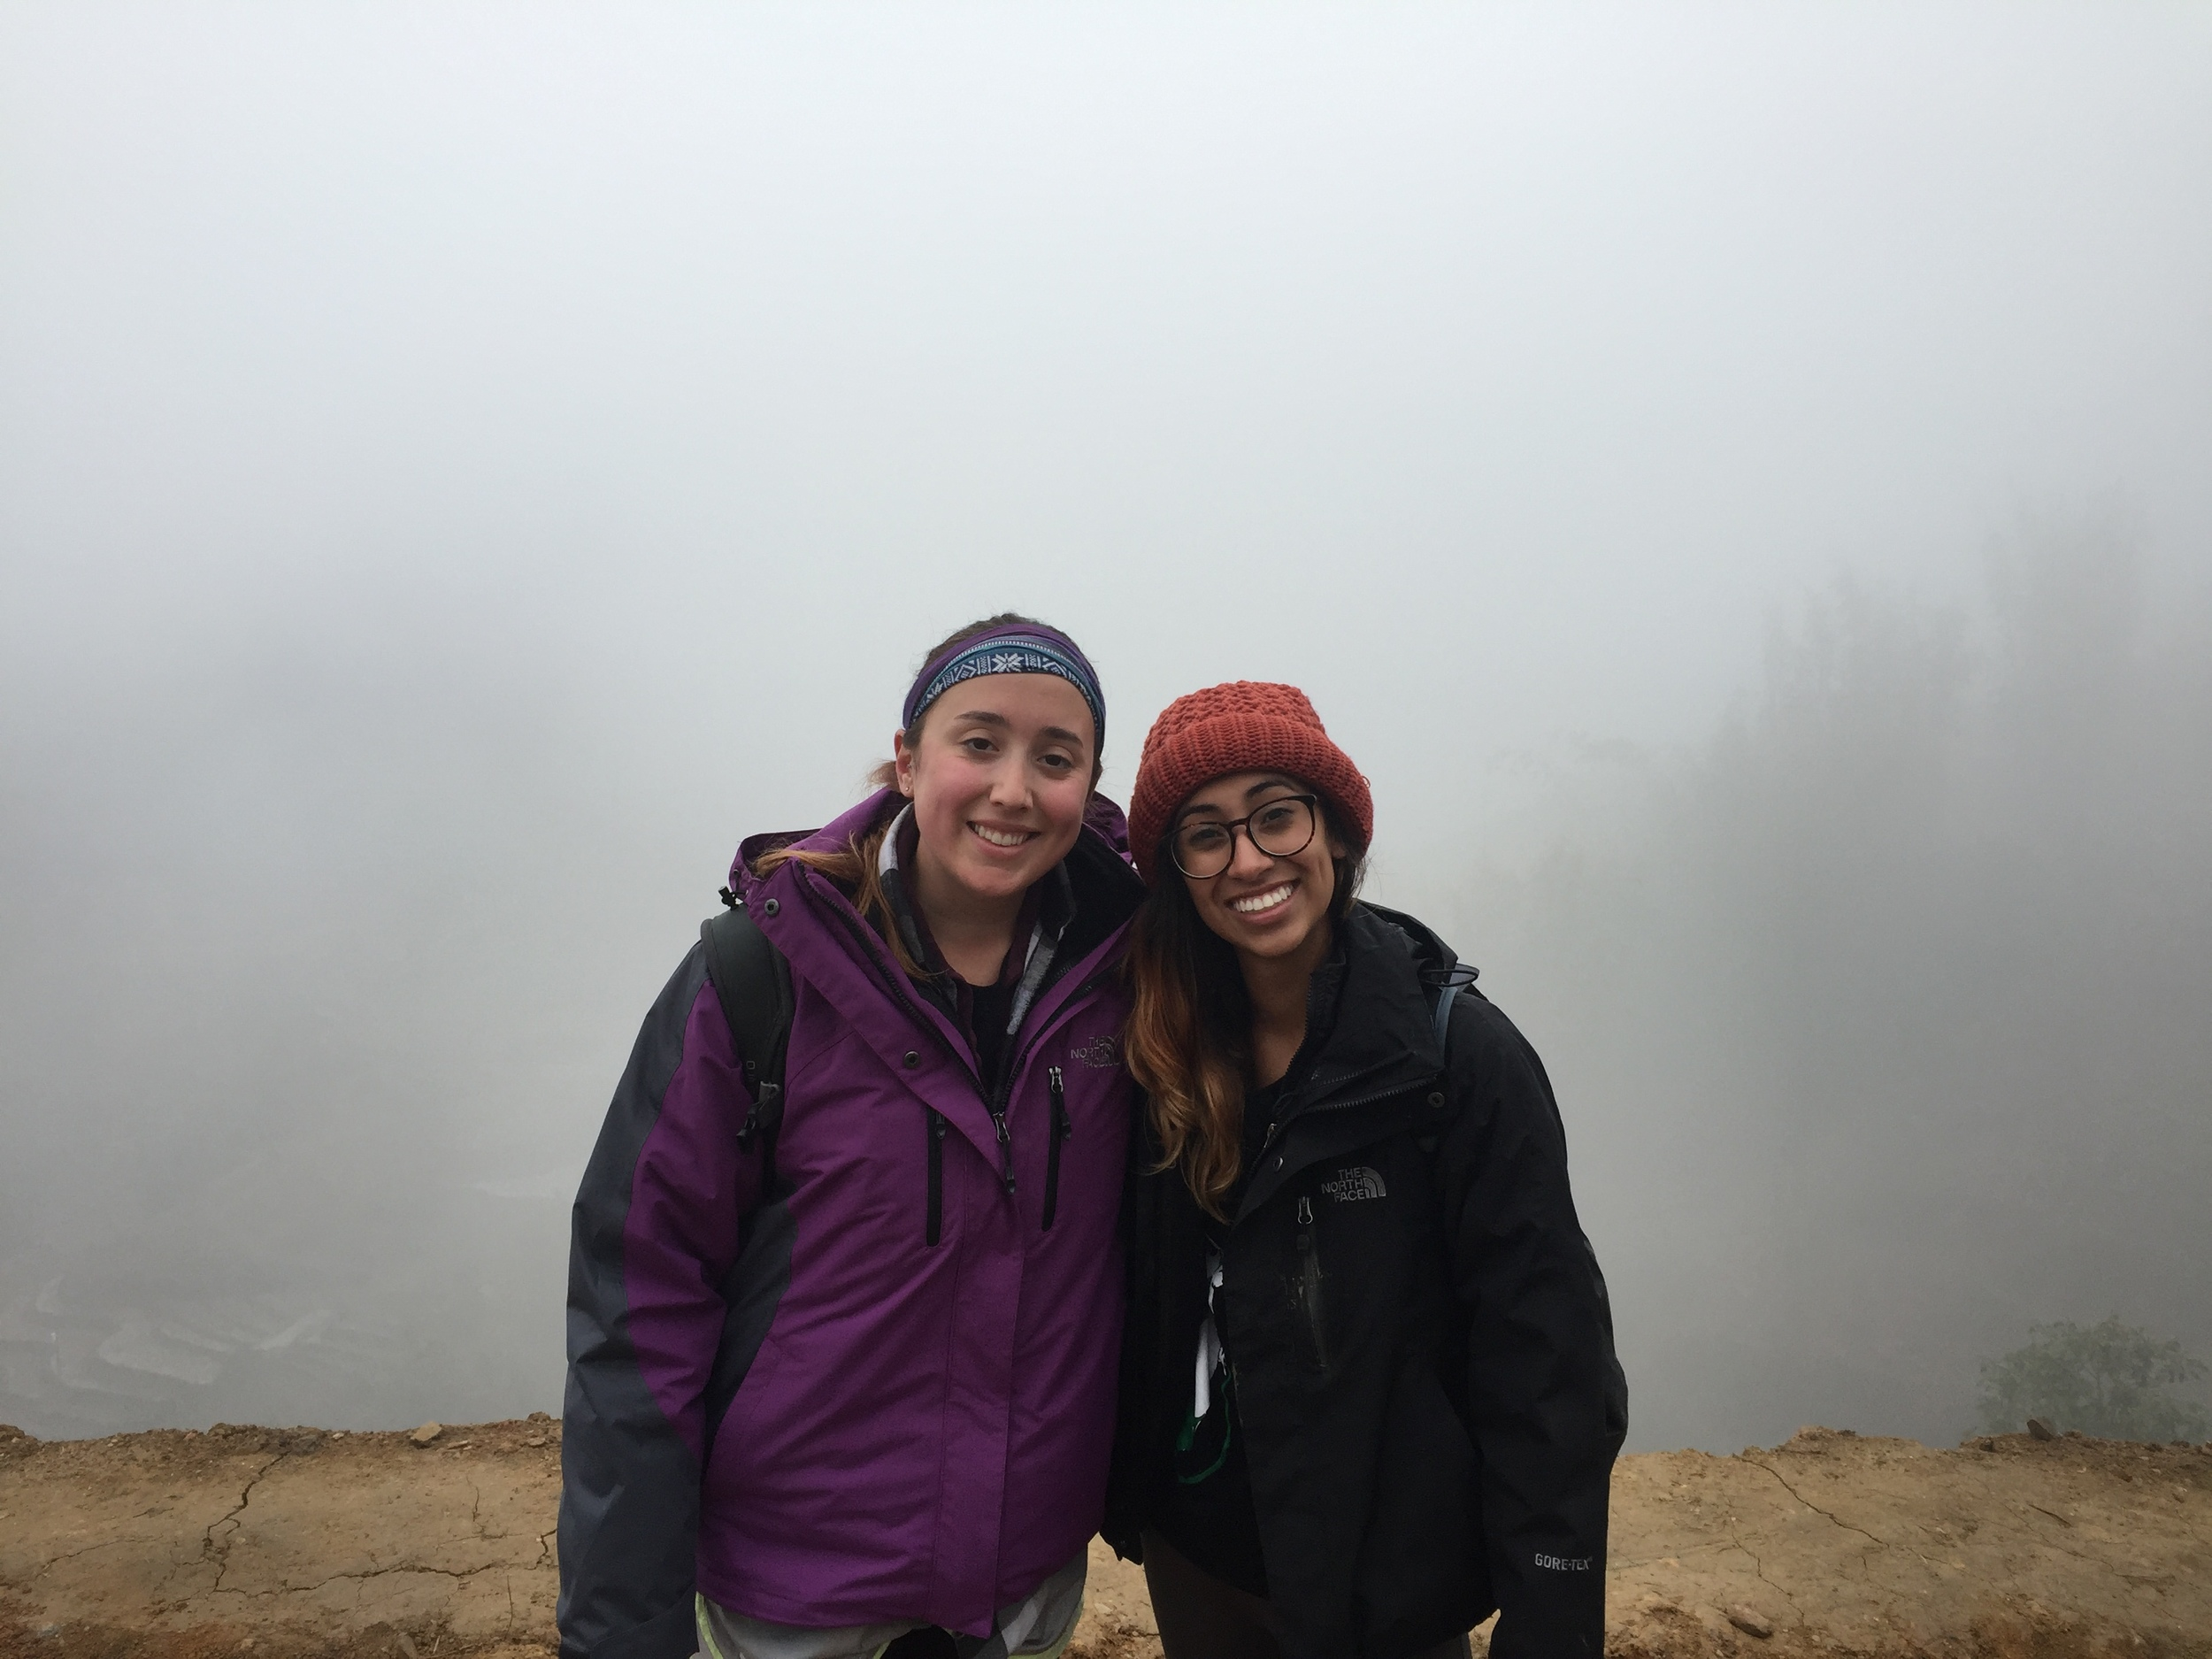 You can see the view behind us before the mist cleared